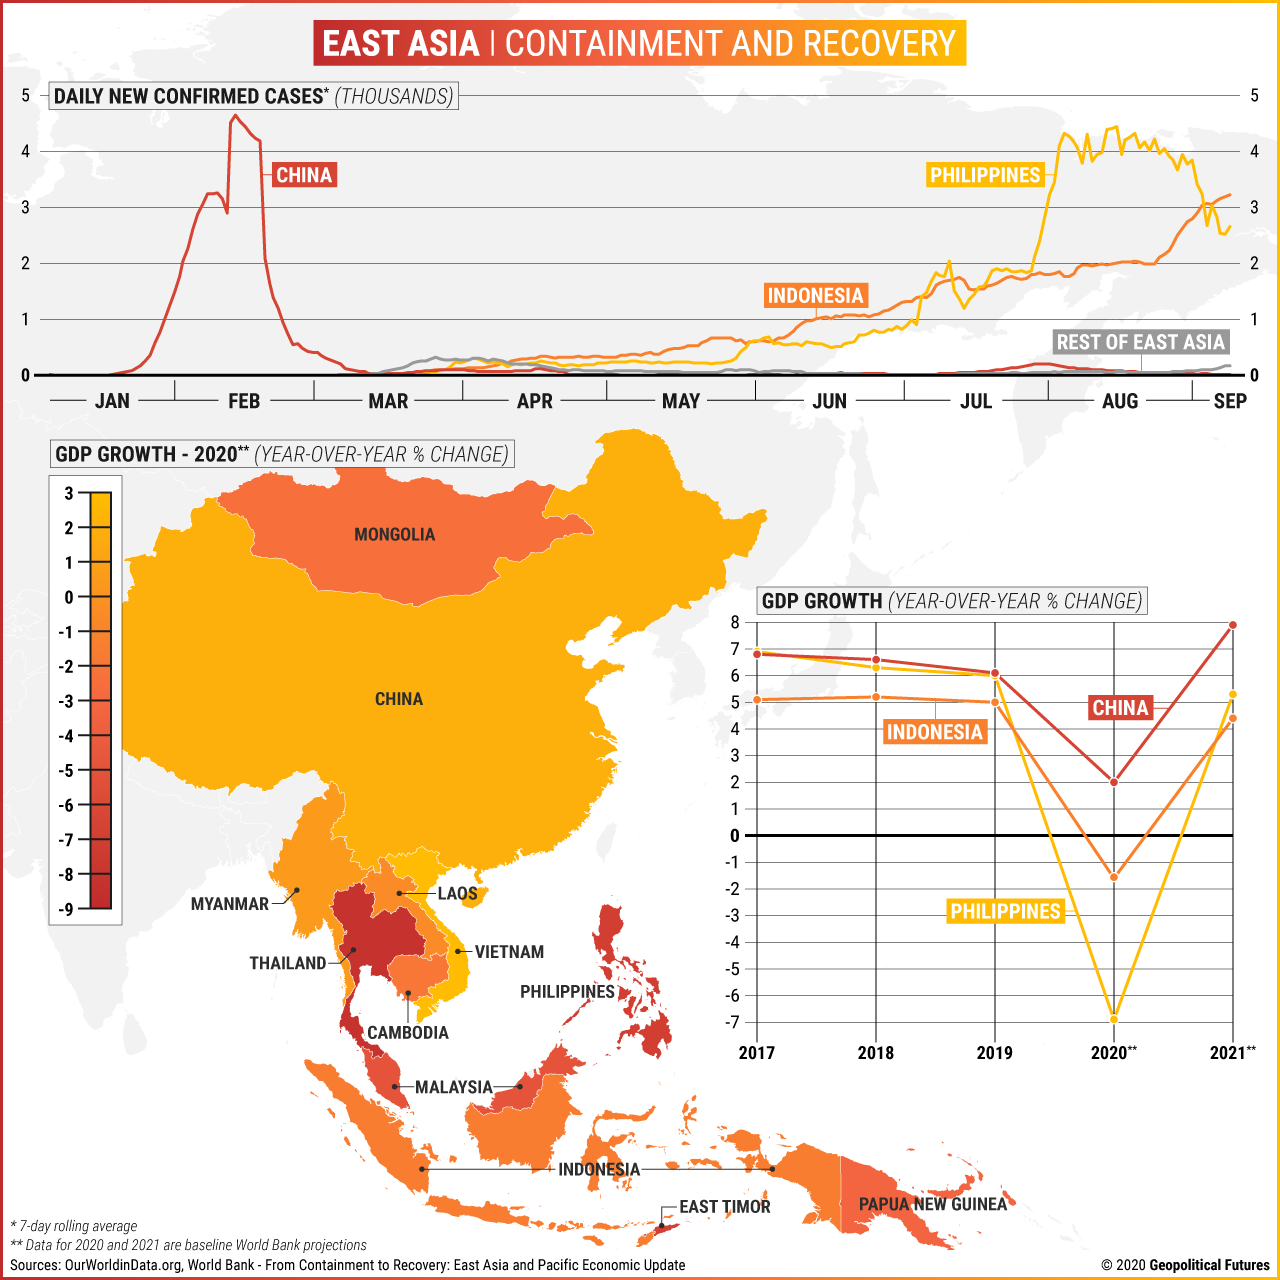 East Asia | Containment and Recovery